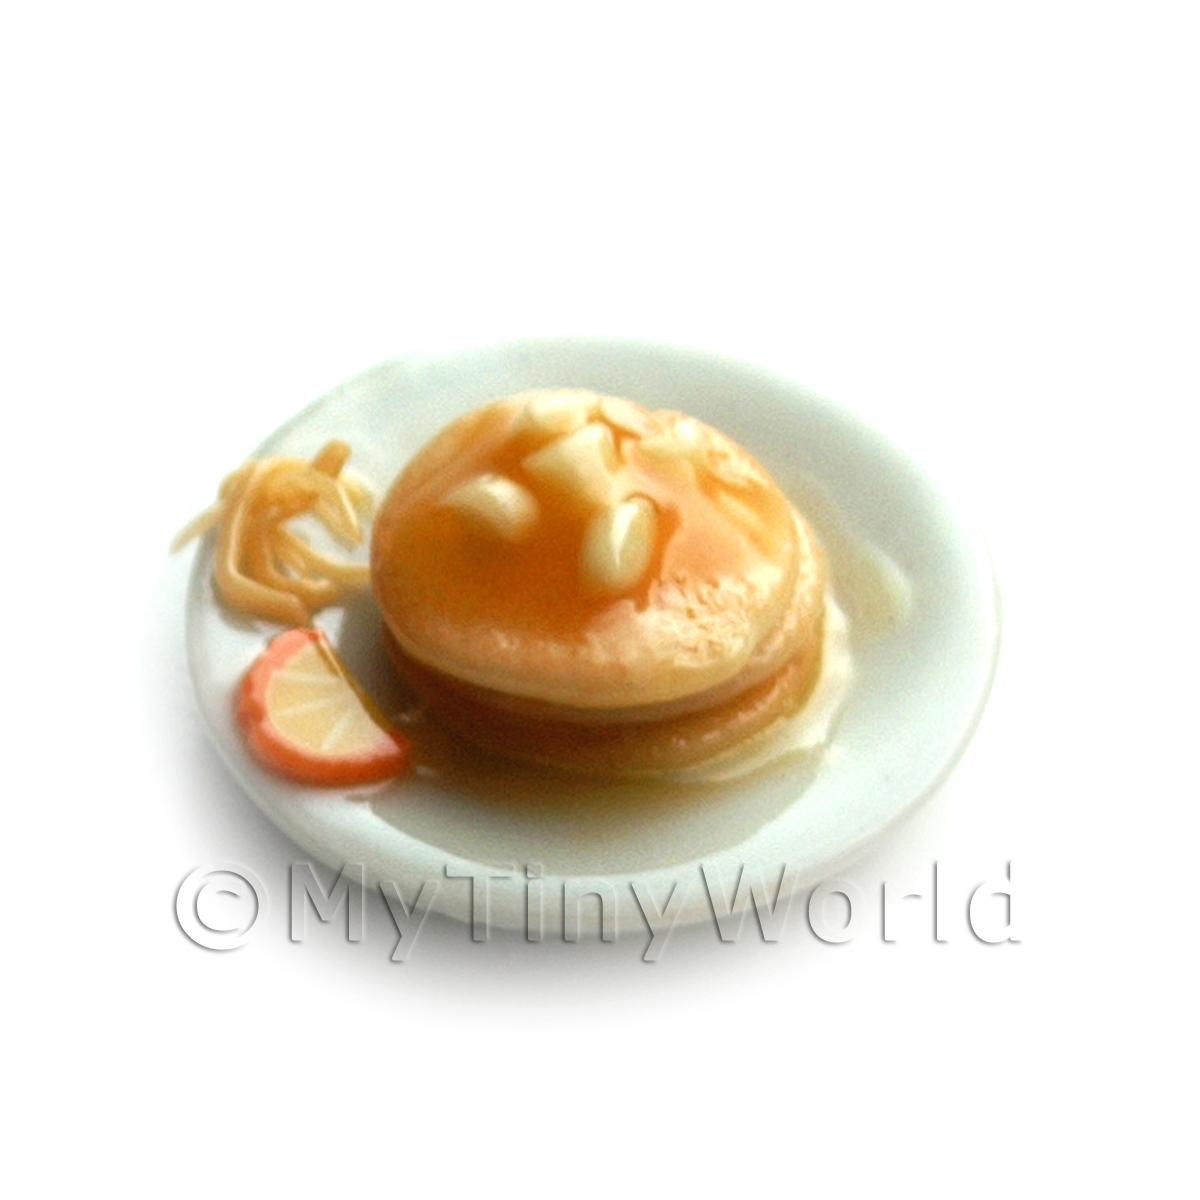 Dolls House Miniature Orange and Almond Topped Pancakes